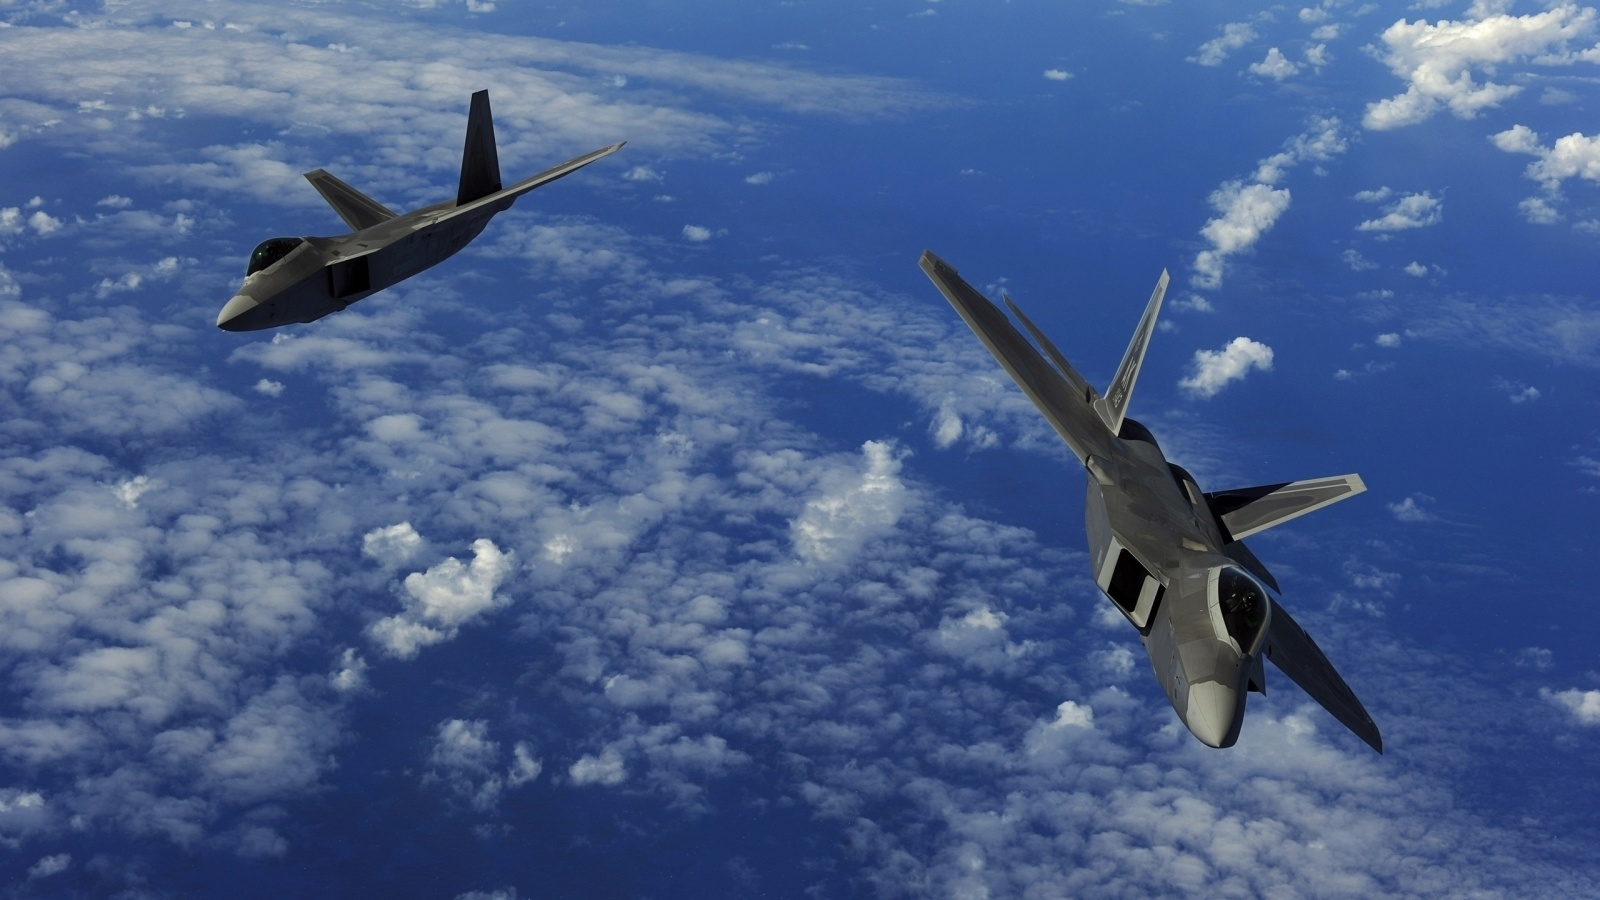 Two F-22 Raptor Aircraft